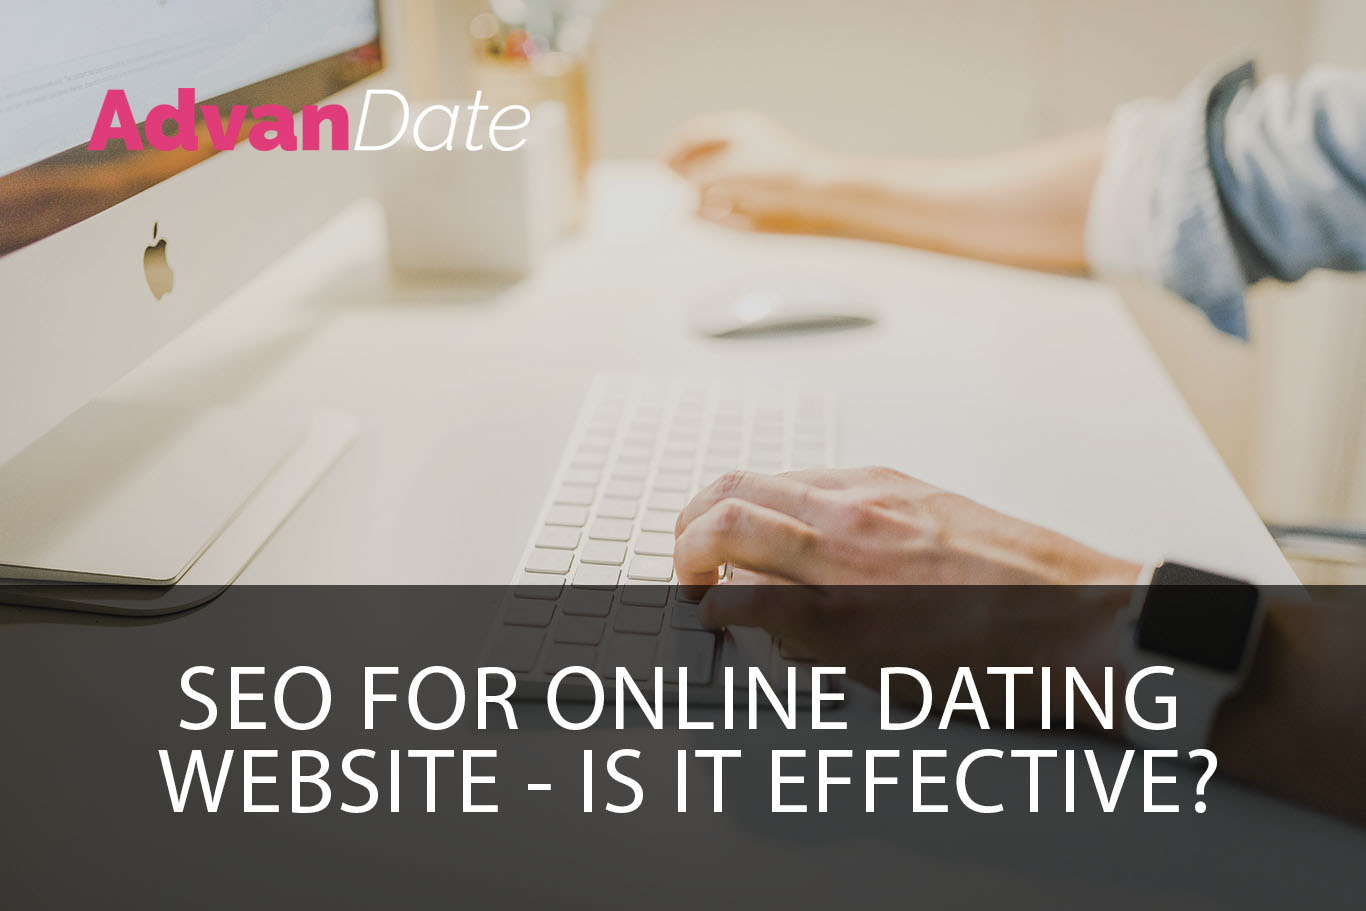 SEO for online dating website – Is it effective?